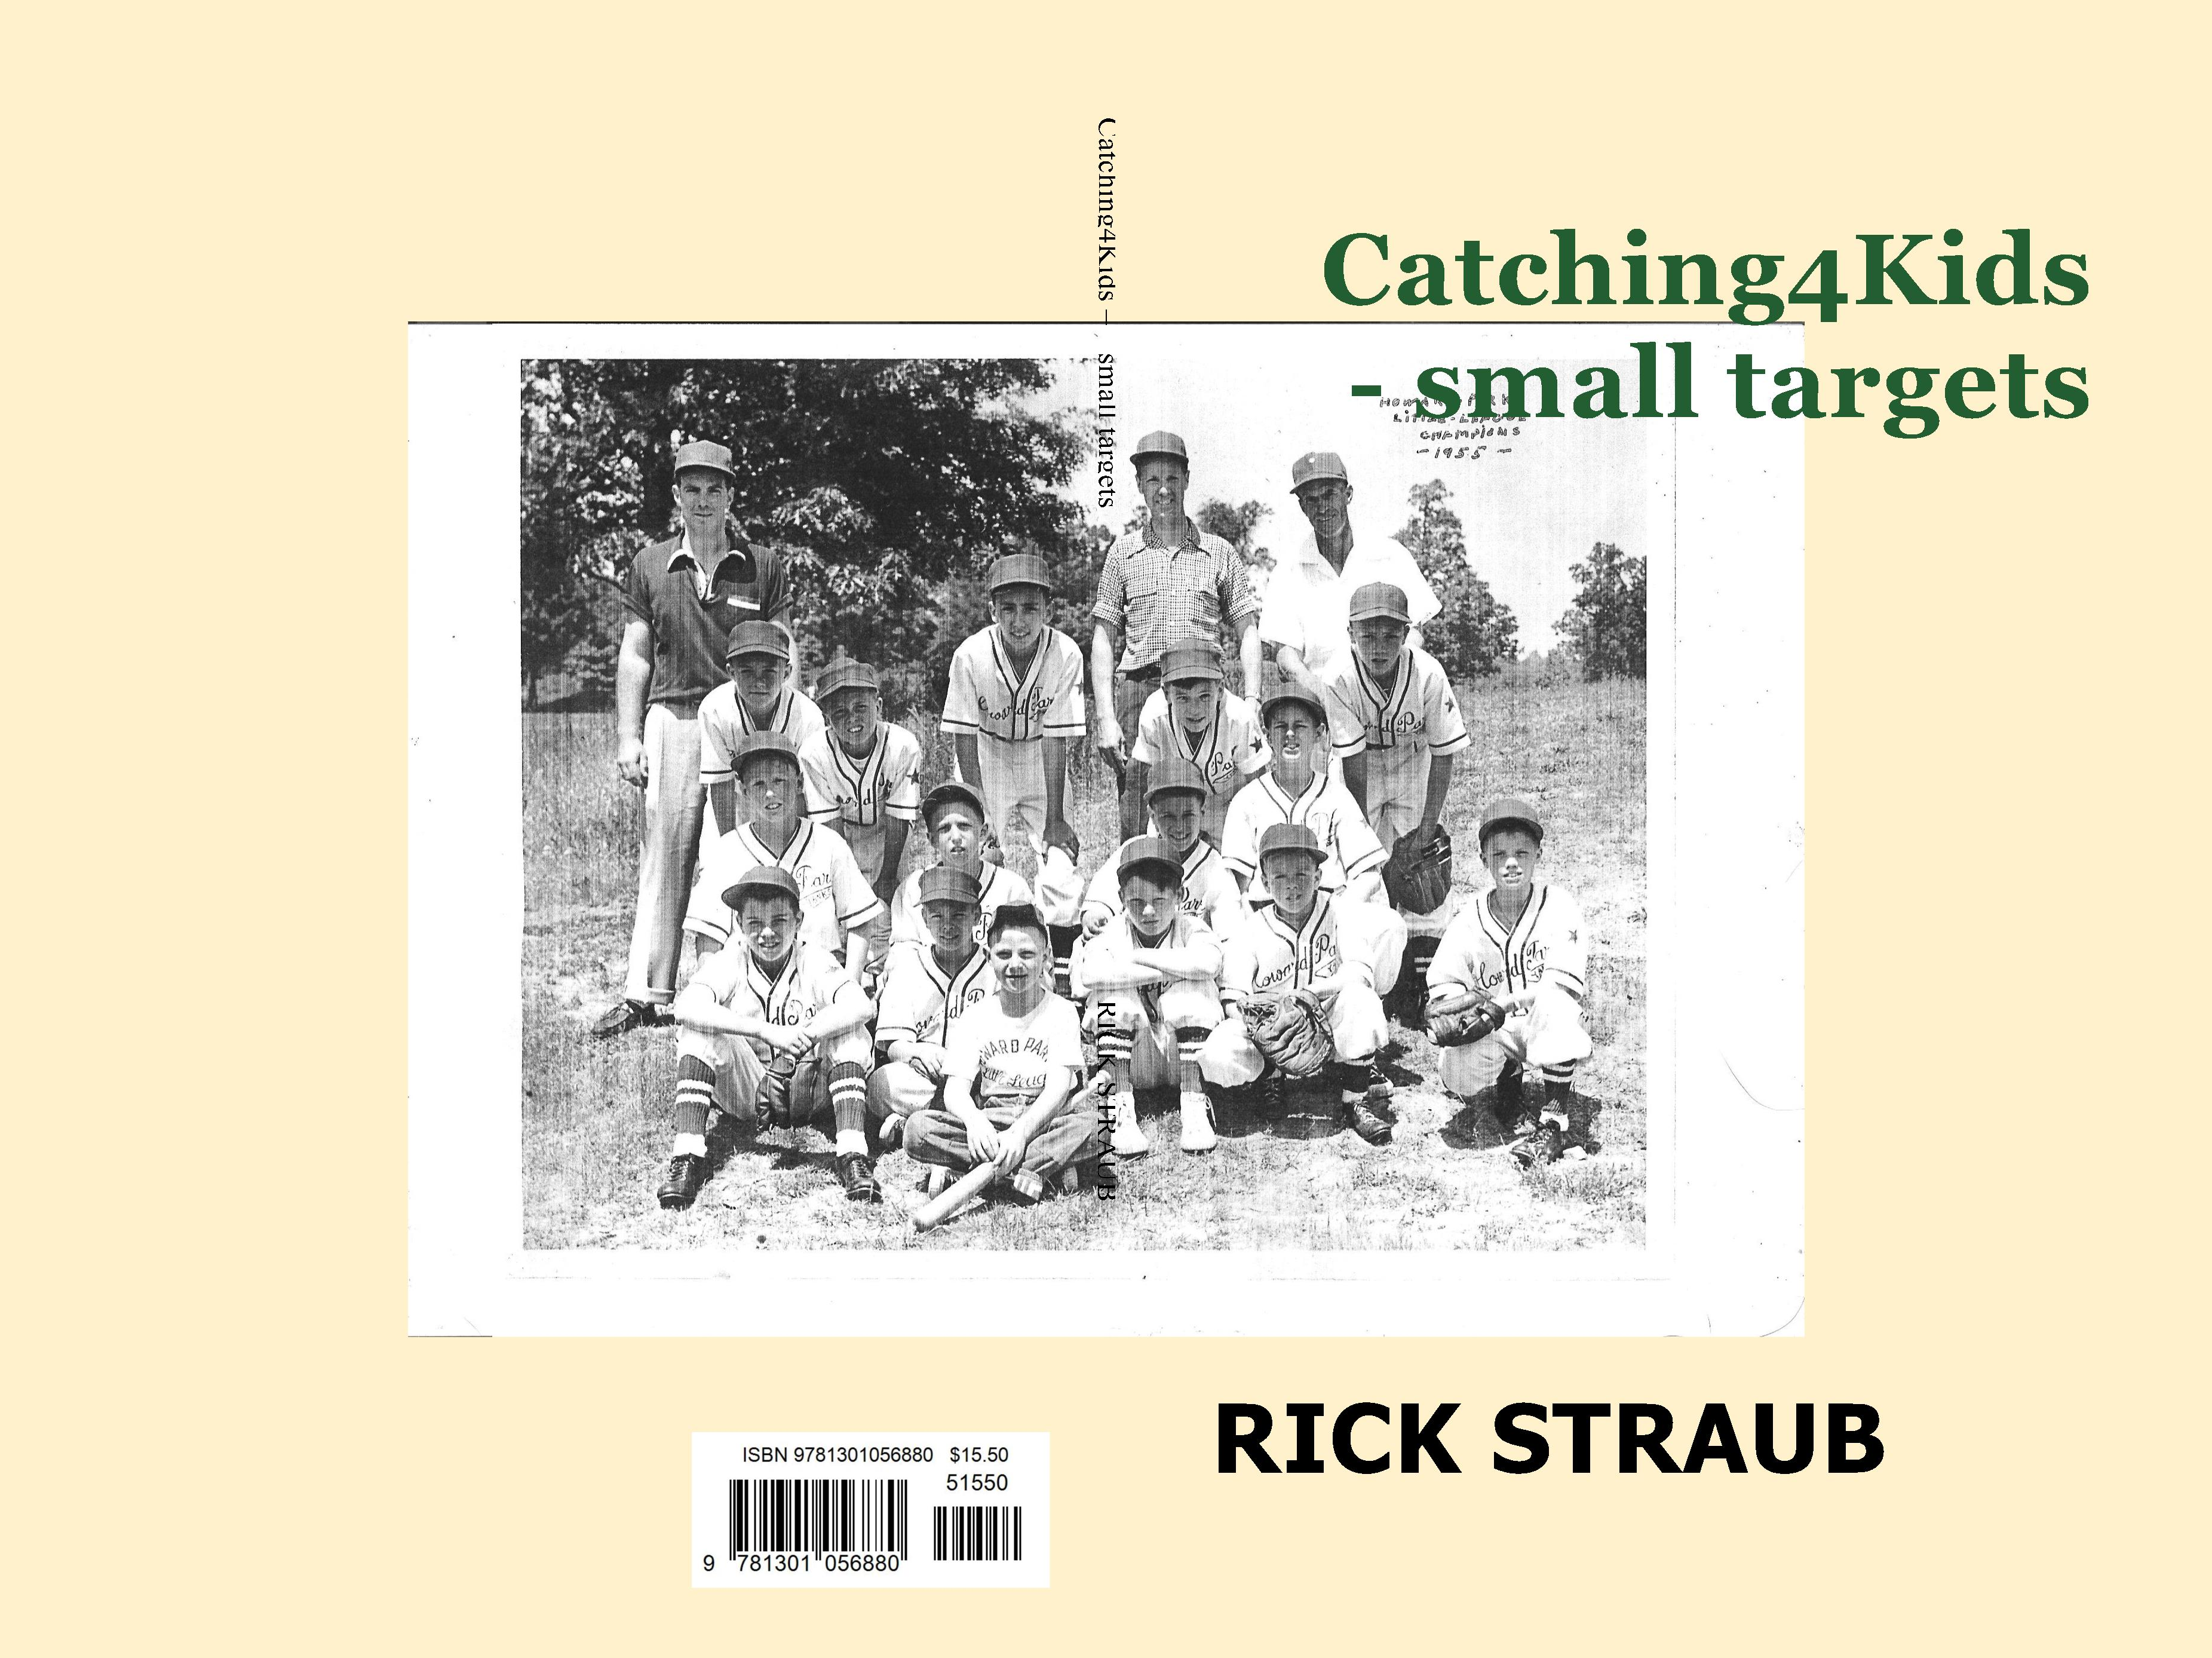 Catching4Kids - small targets cover image